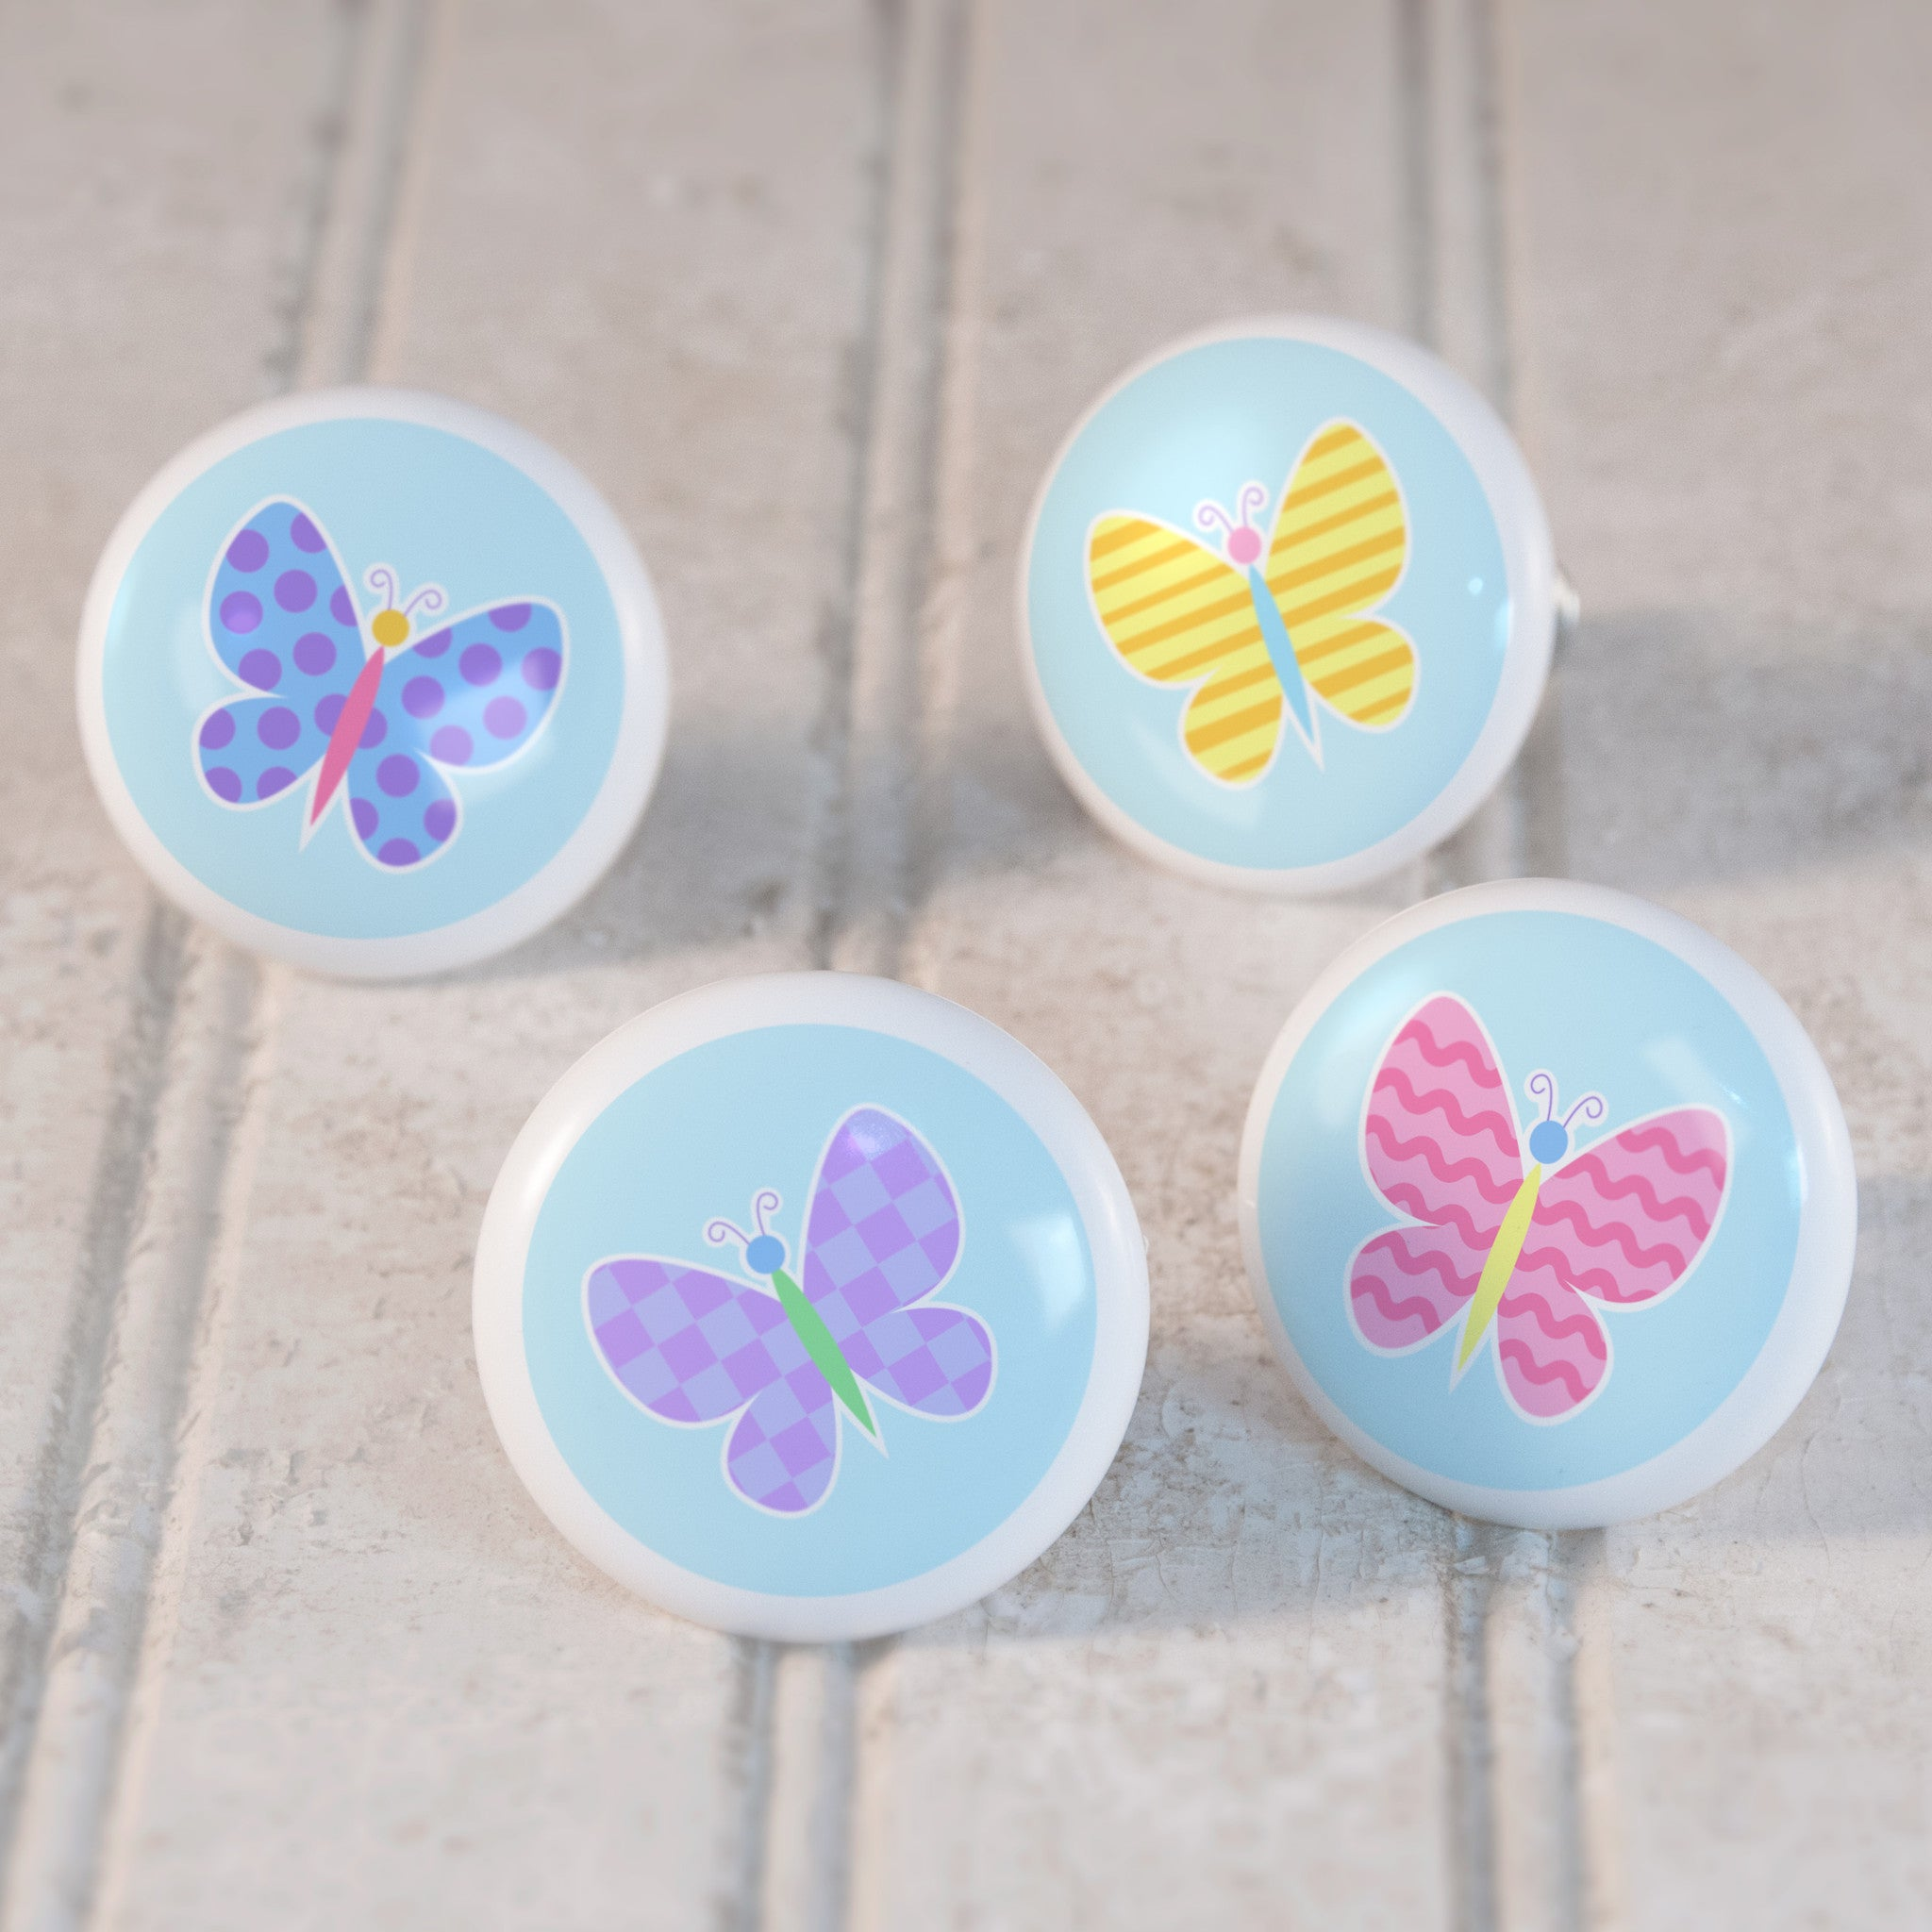 Butterfly Garden Set Of 4 Small Ceramic Kids Drawer Knobs By Olive Kids  From Art Appeel ...